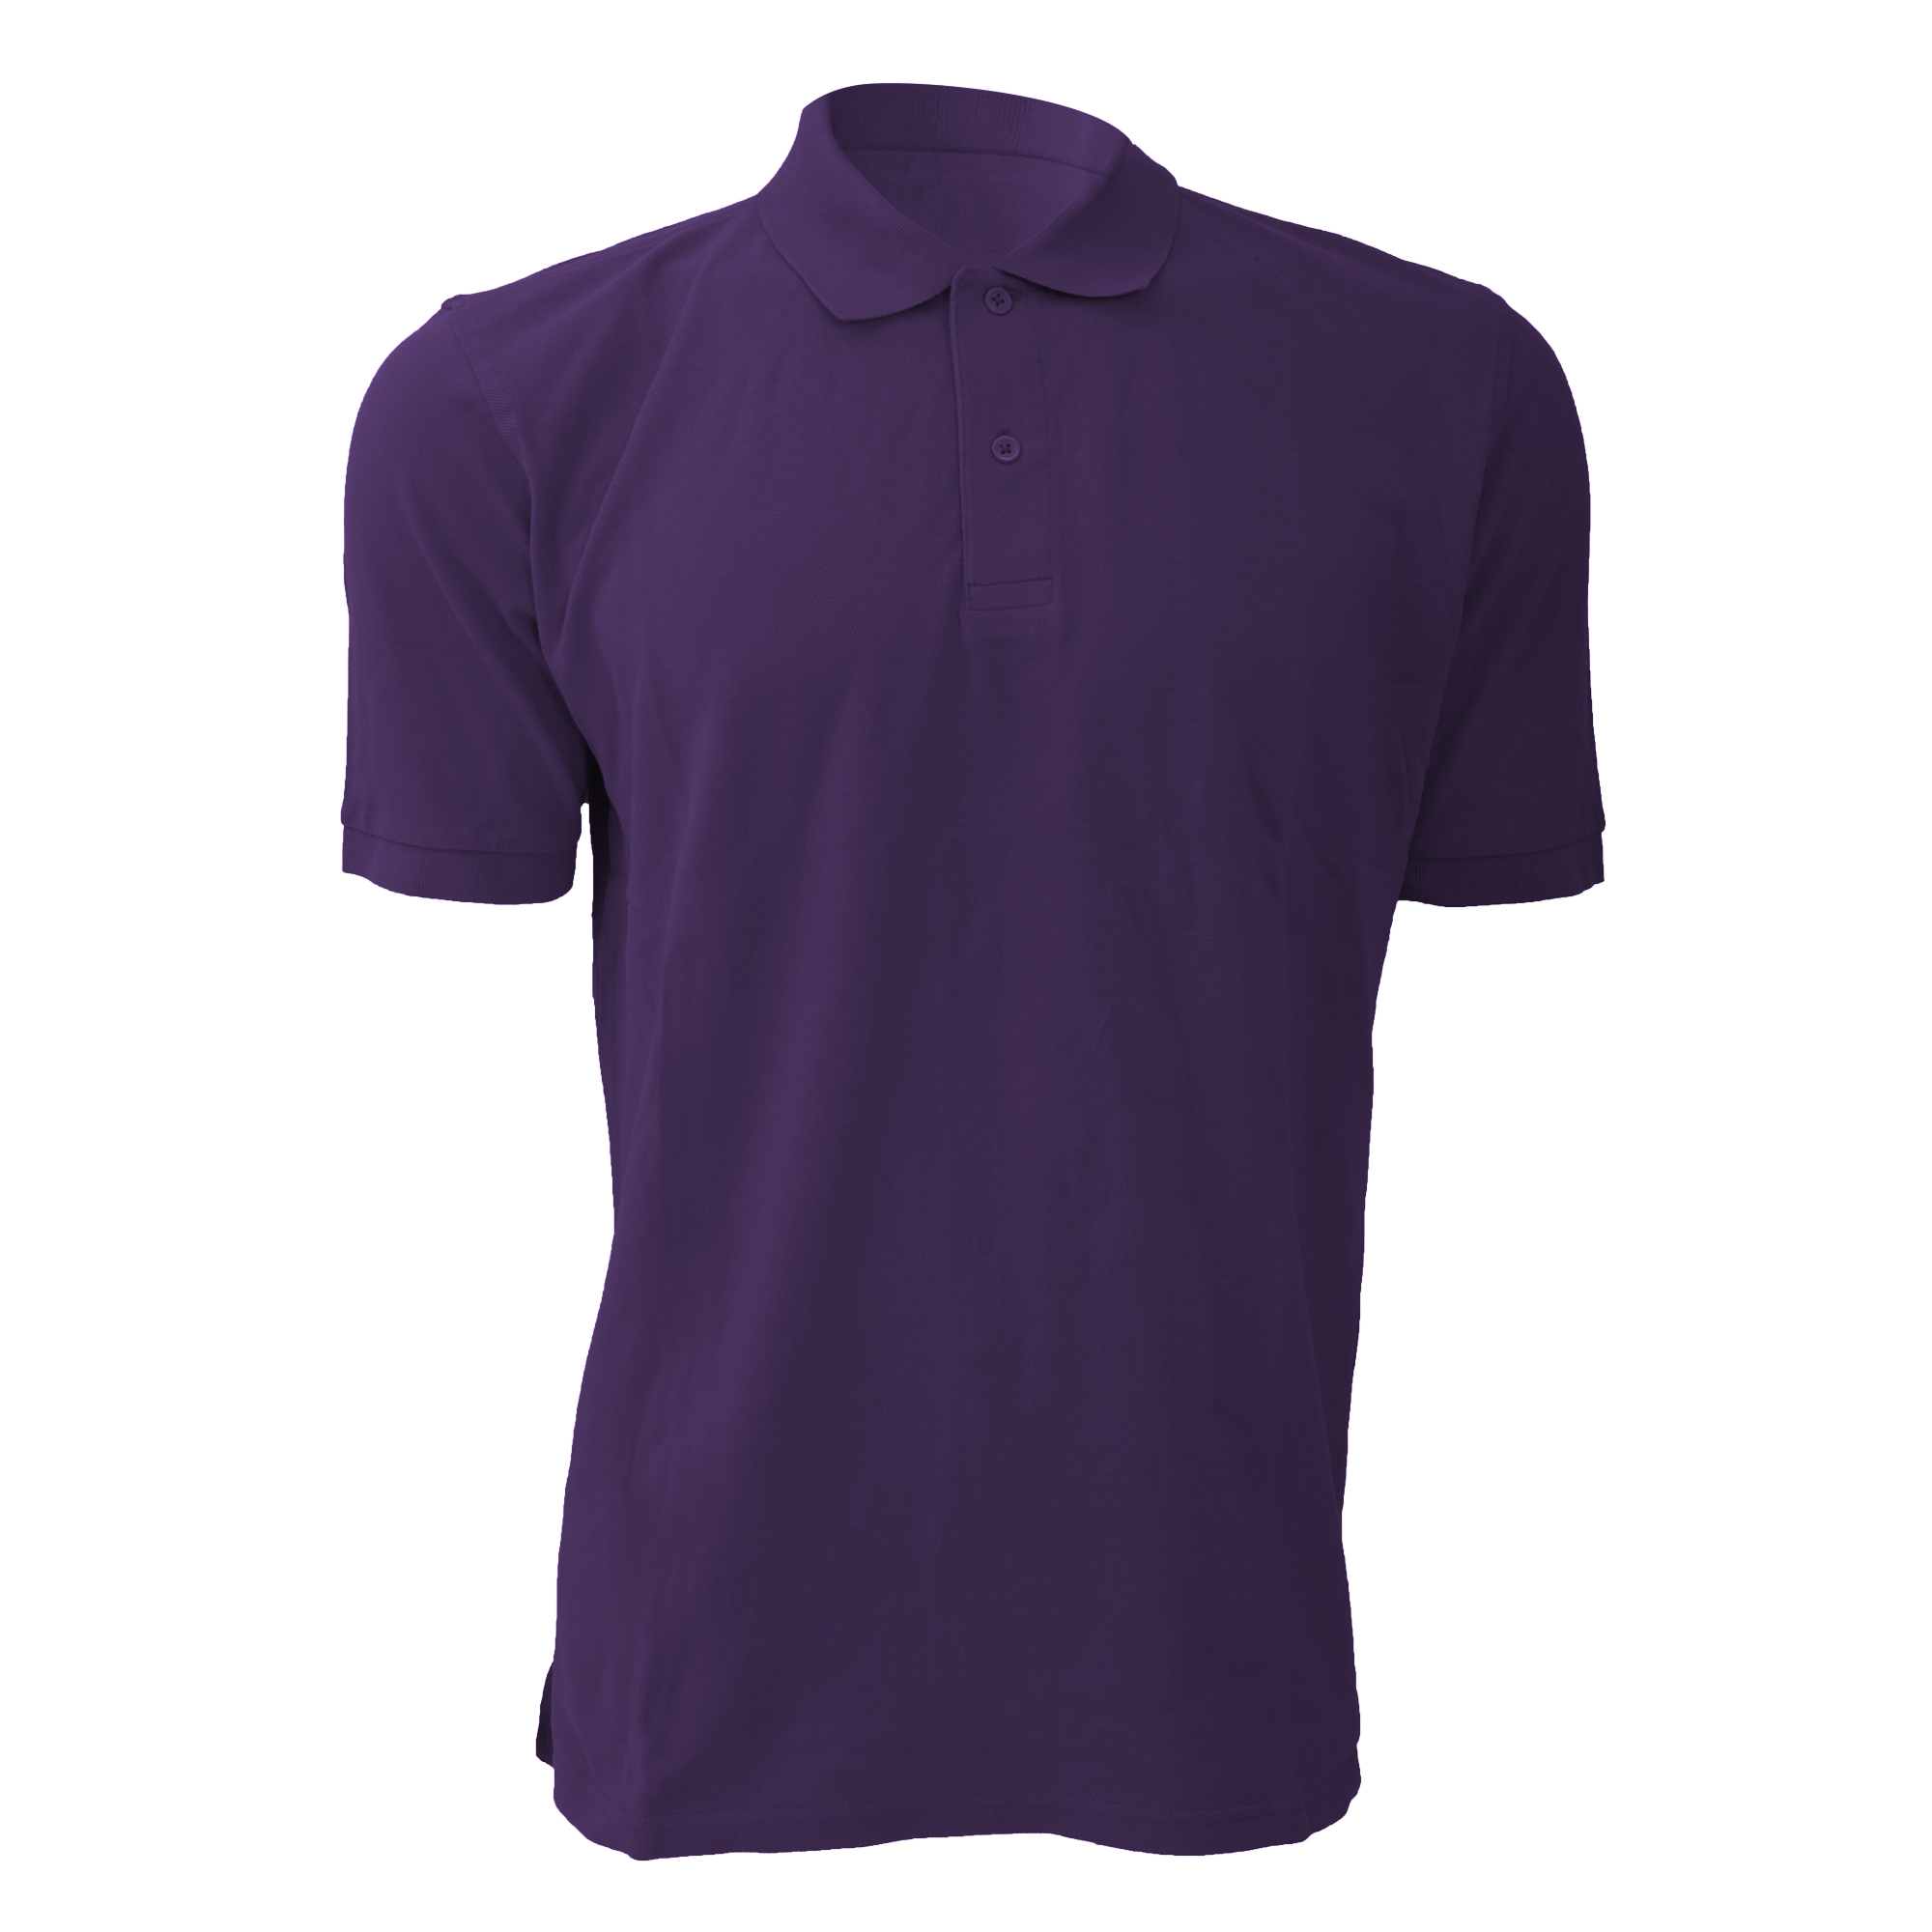 4b79cb4a Jerzees Colours Mens 100 Cotton Short Sleeve Polo Shirt UK Size L Purple.  About this product. Picture 1 of 2; Picture 2 of 2